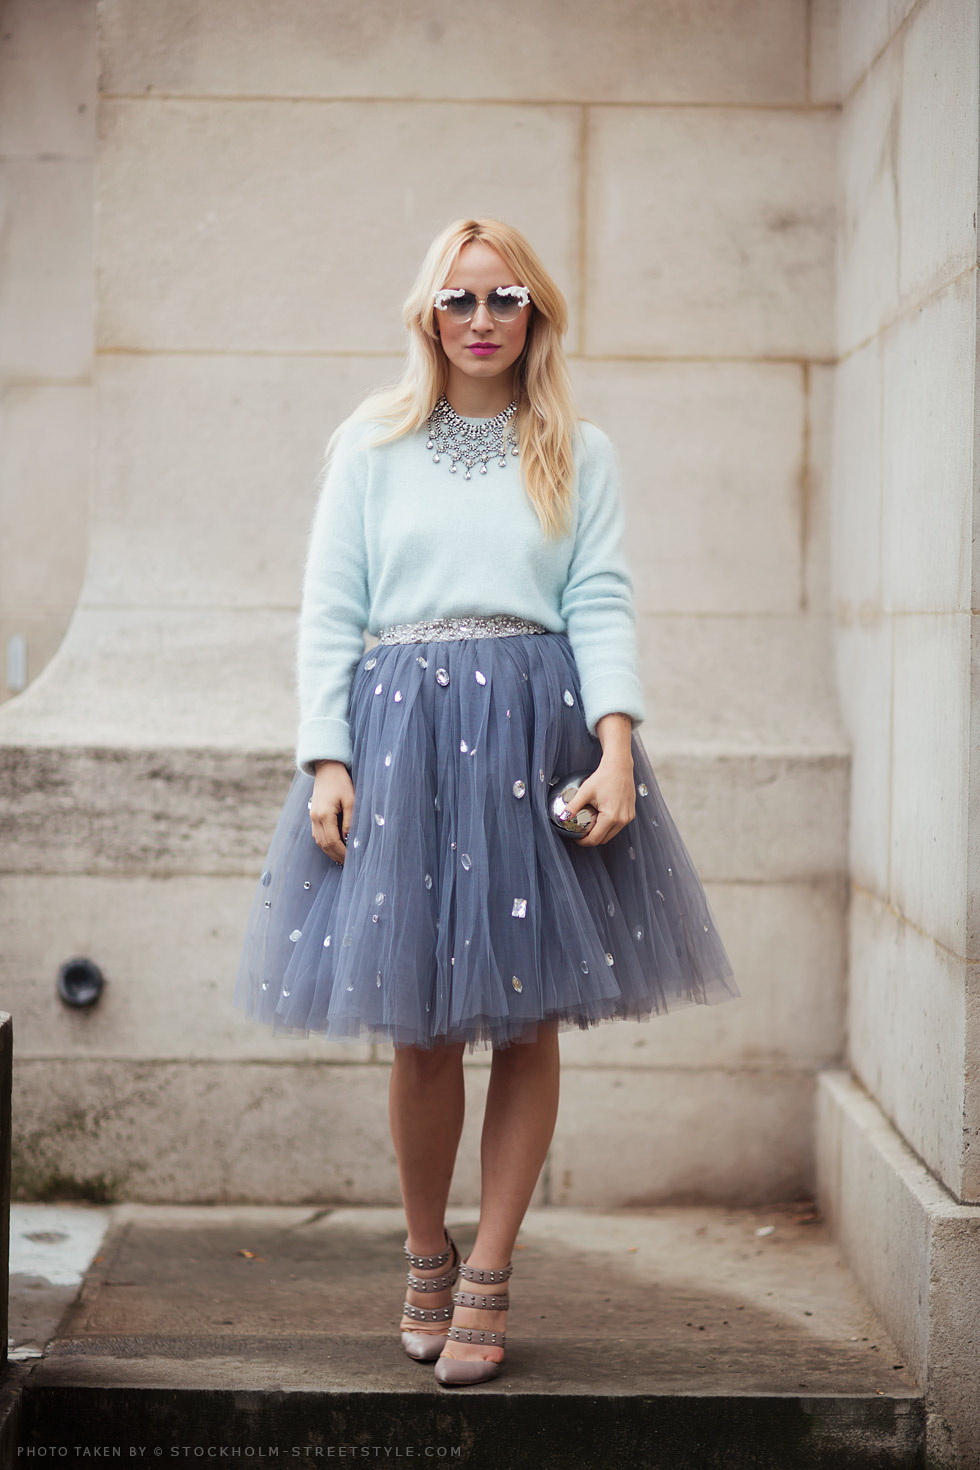 How To Wear Tulle Skirts 2019 Become Chic